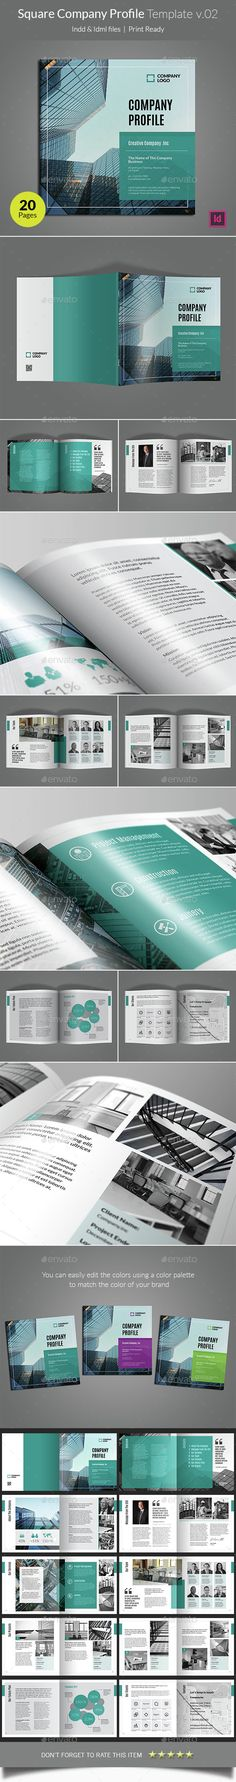 Company Profile Template InDesign INDD. Download here…